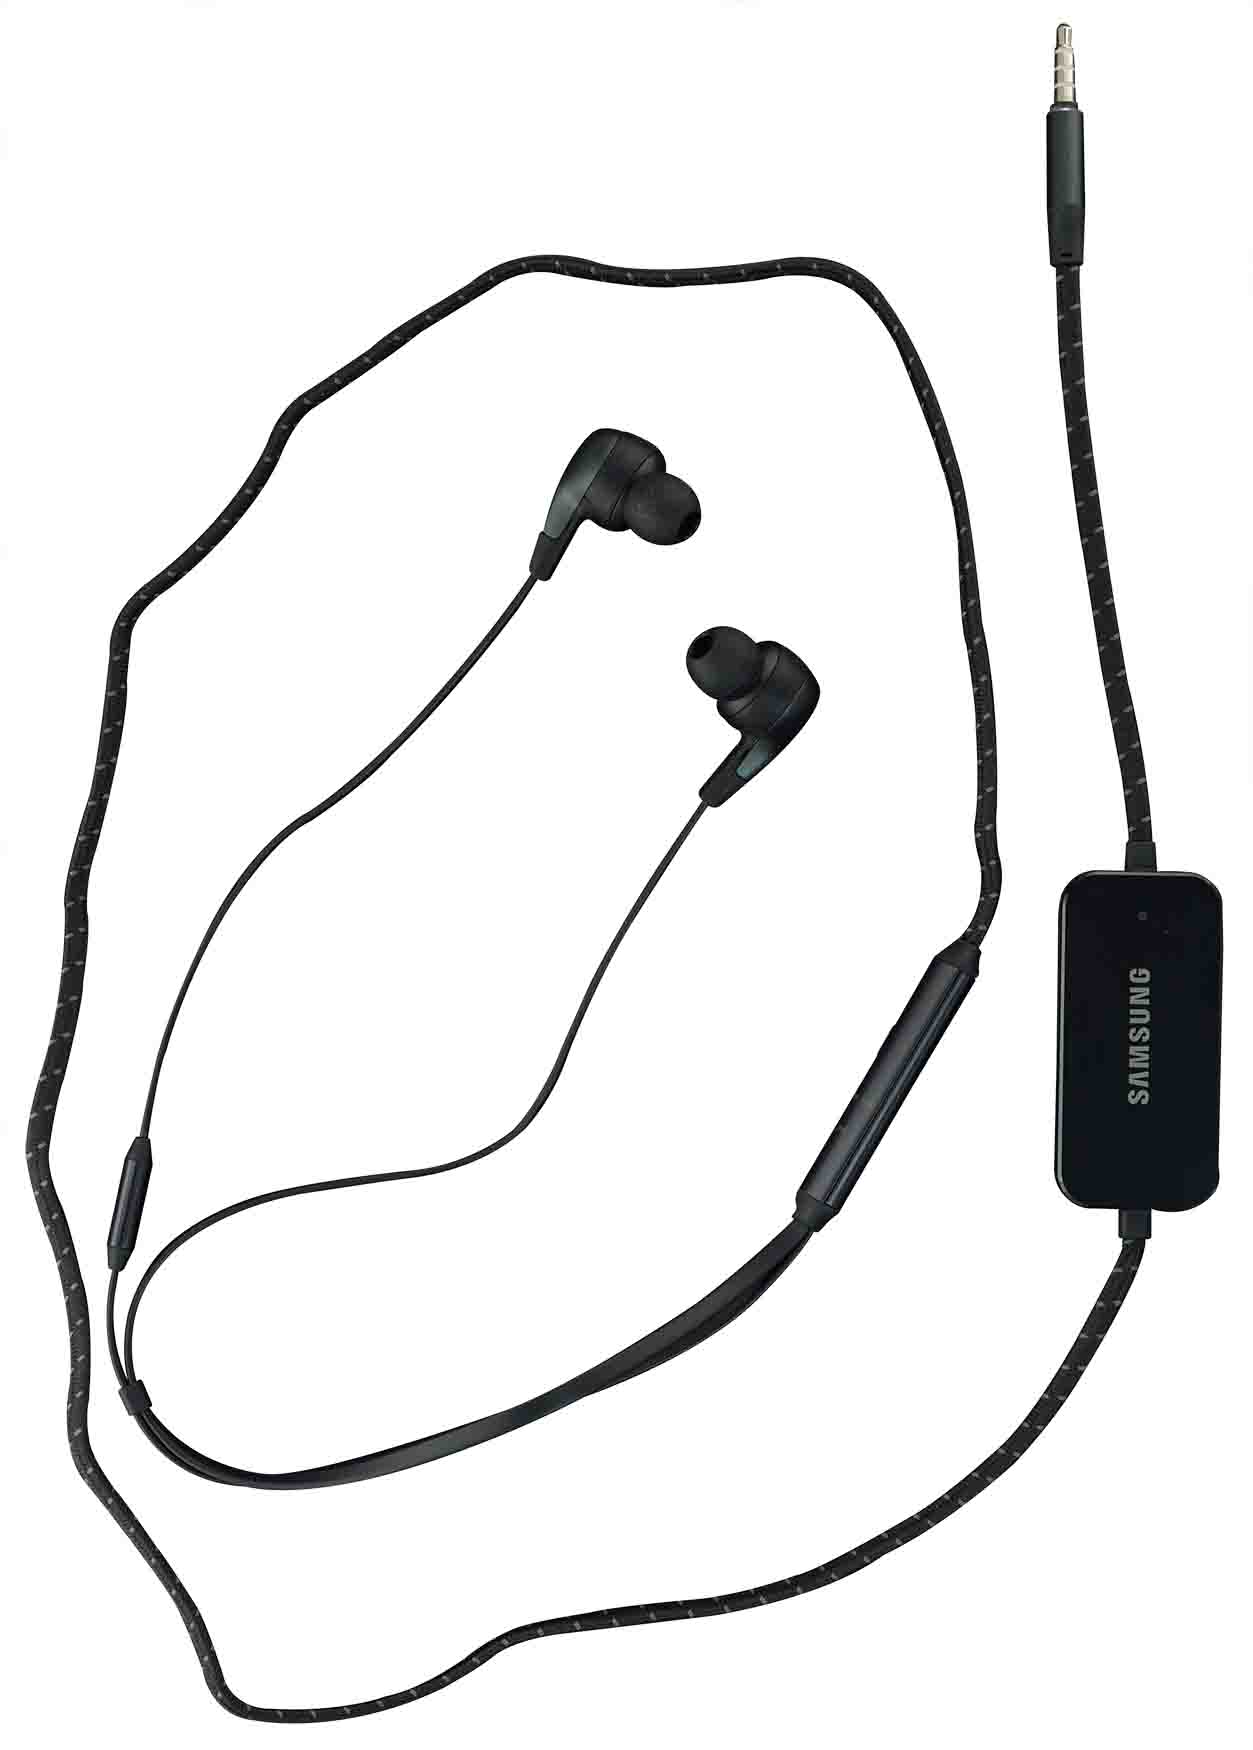 Advanced ANC Earphones